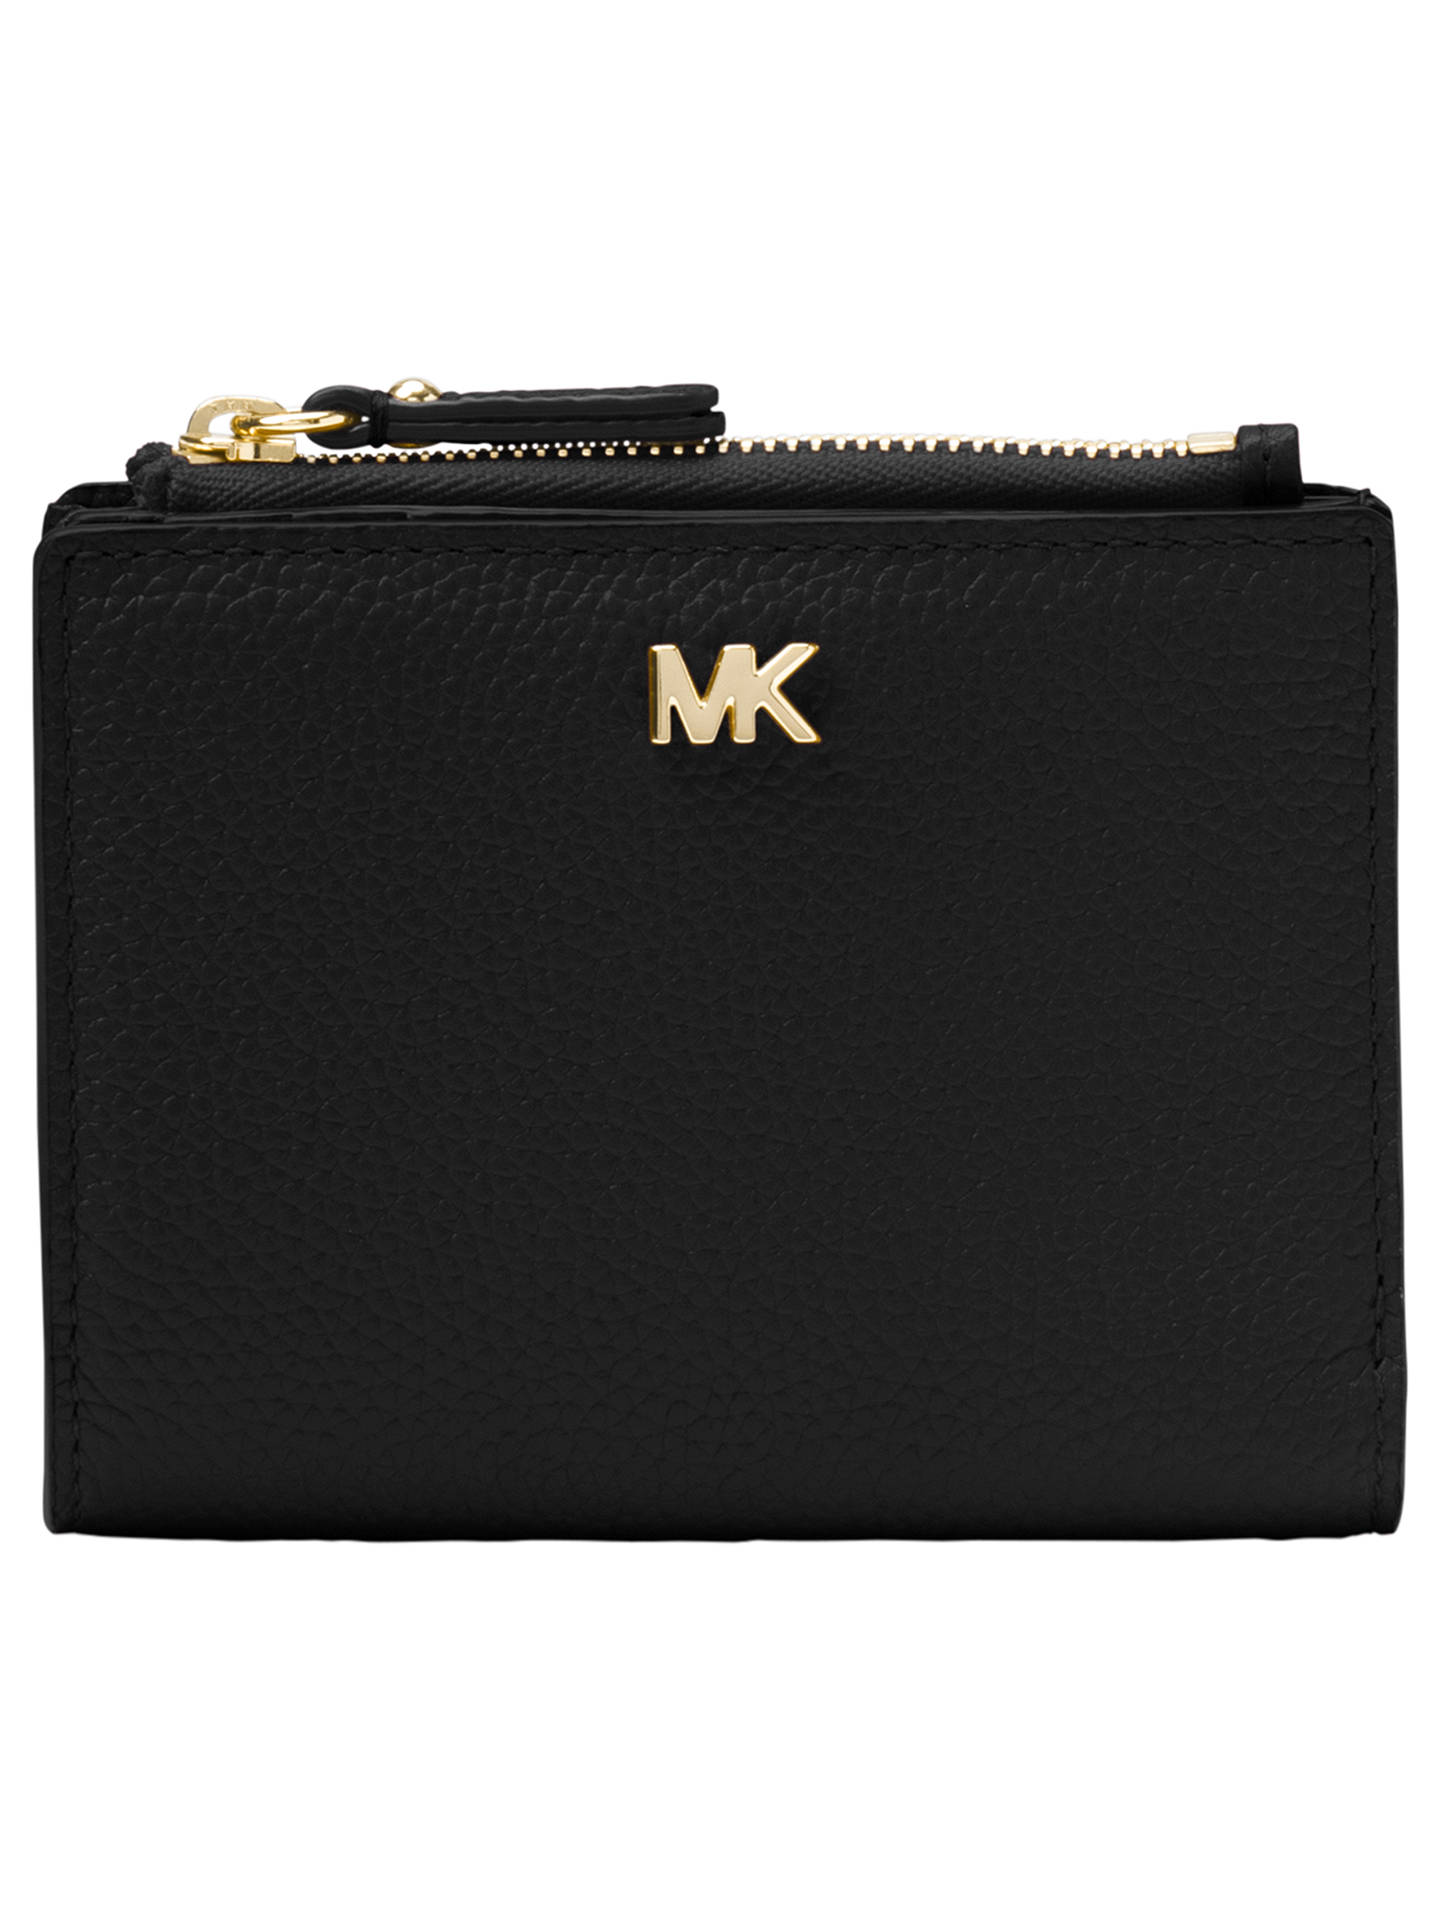 32de2d23c060 Buy MICHAEL Michael Kors Money Pieces Leather Snap Billfold Purse, Black  Online at johnlewis.